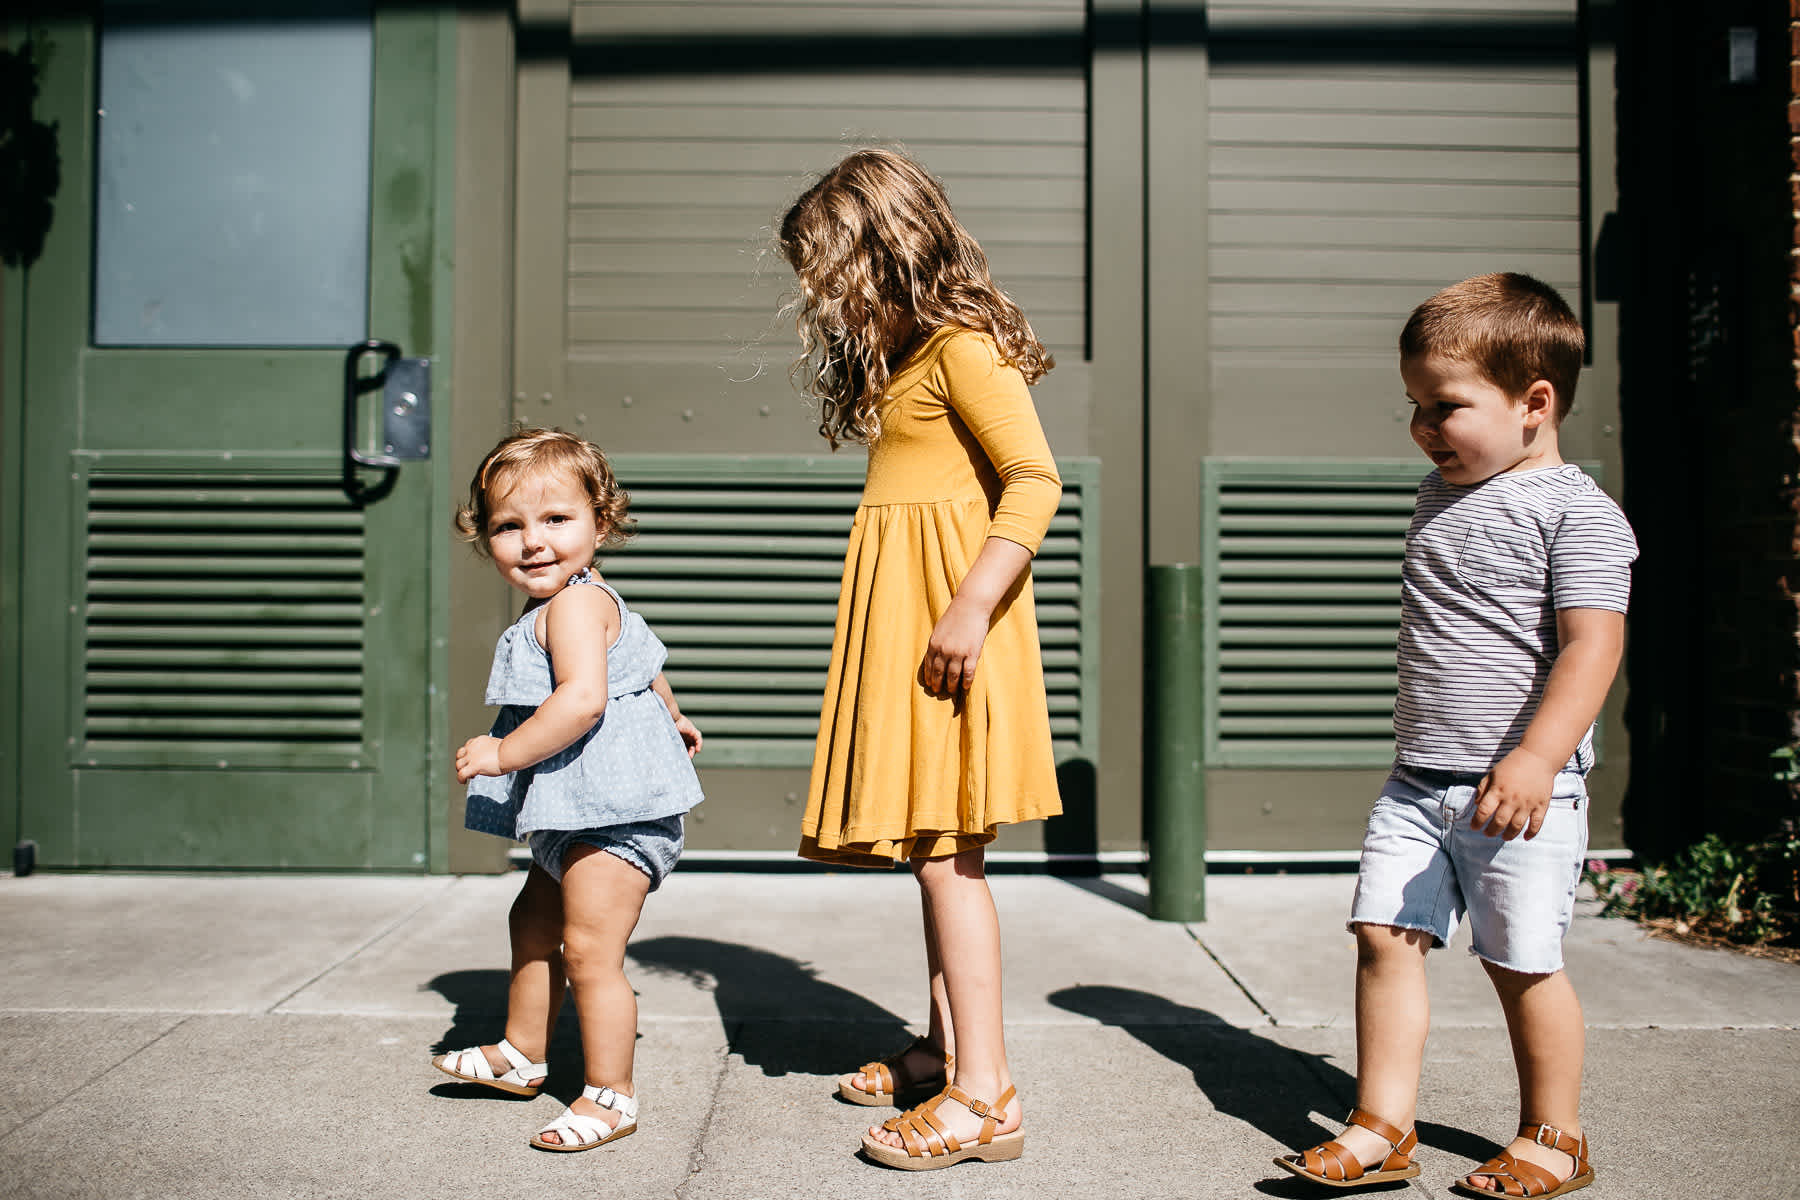 east-bay-san-francisco-urban-family-lifestyle-session-7